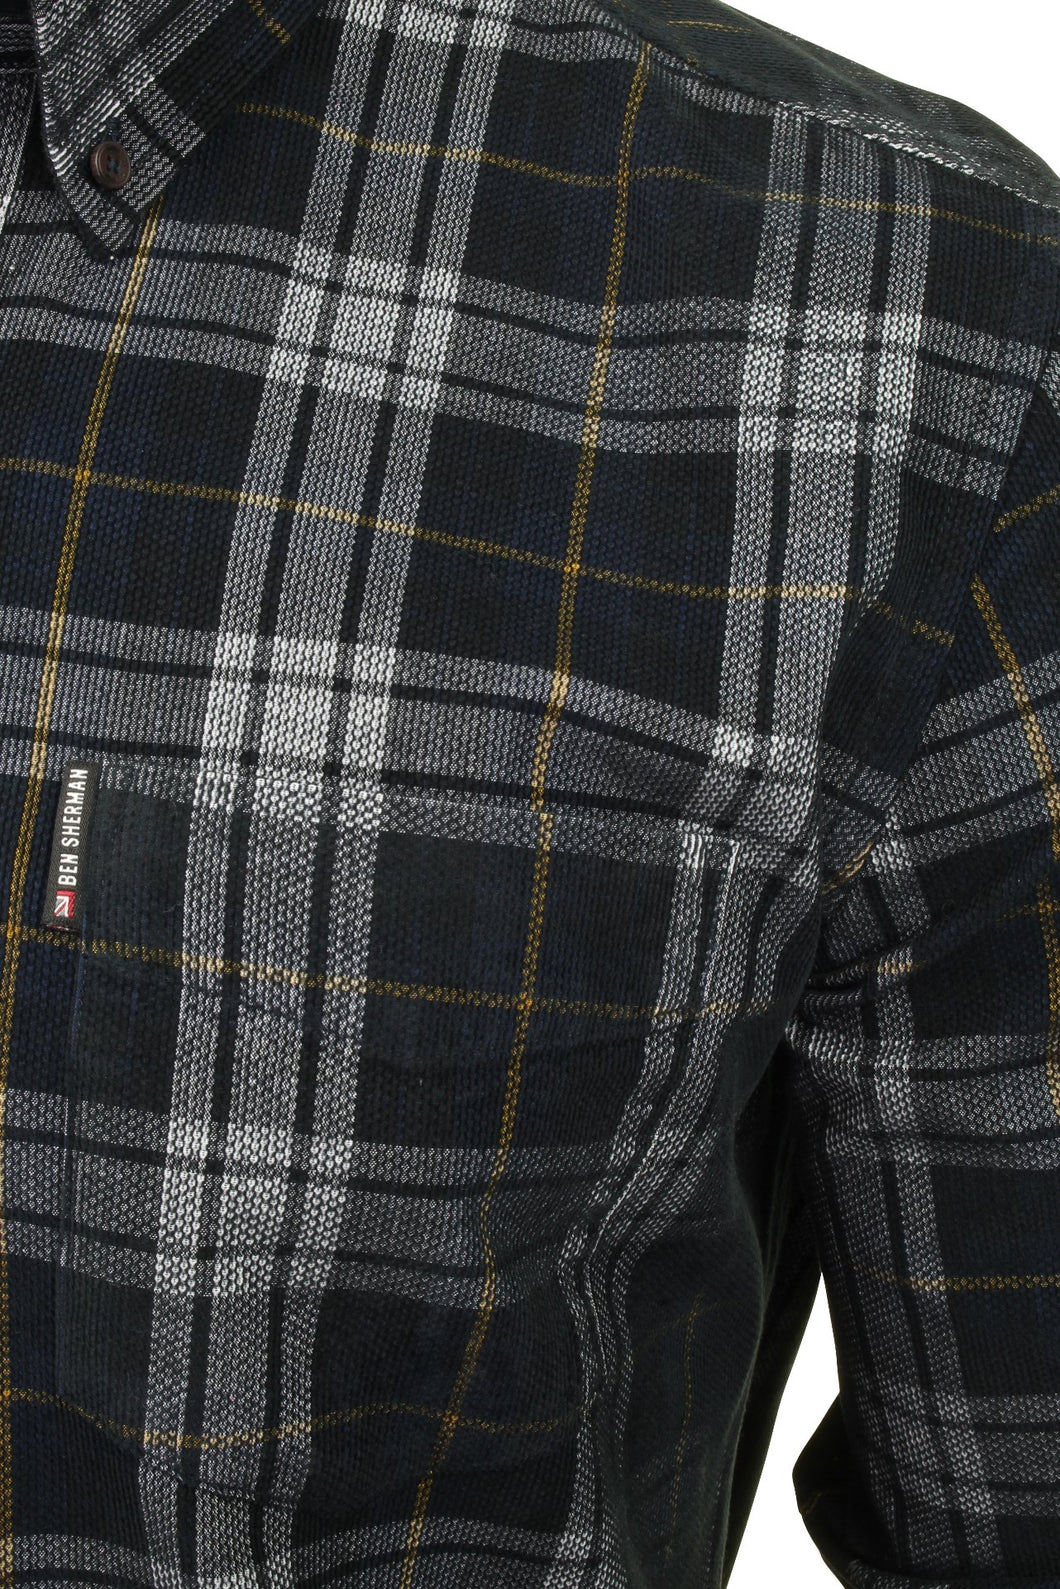 Ben Sherman Printed Check Shirt